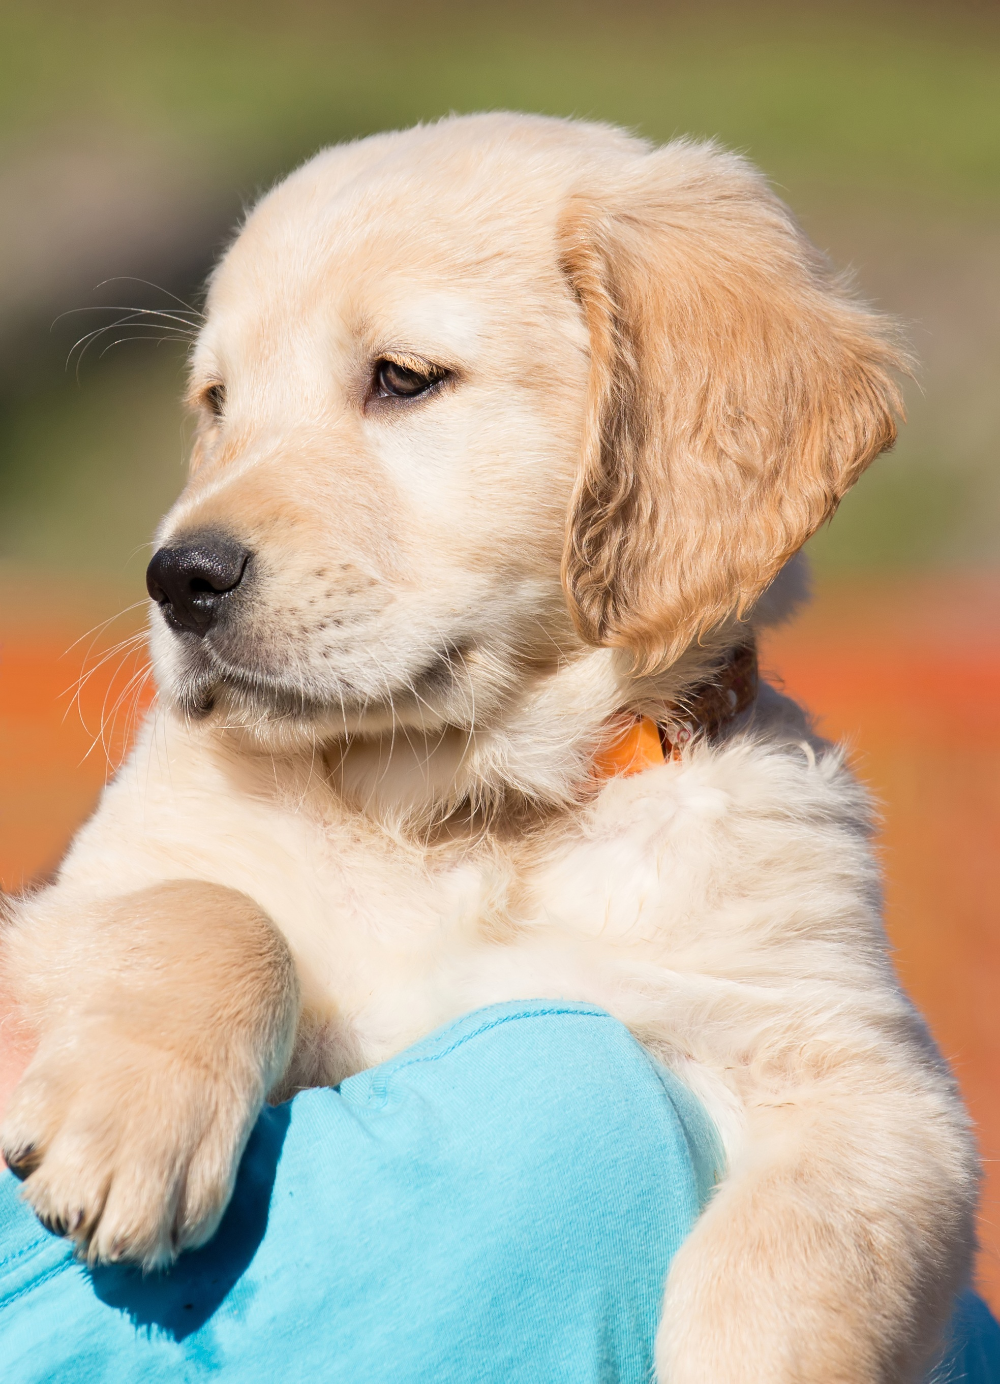 Snap & stitch in 2020 Puppies, Golden retriever, Dogs